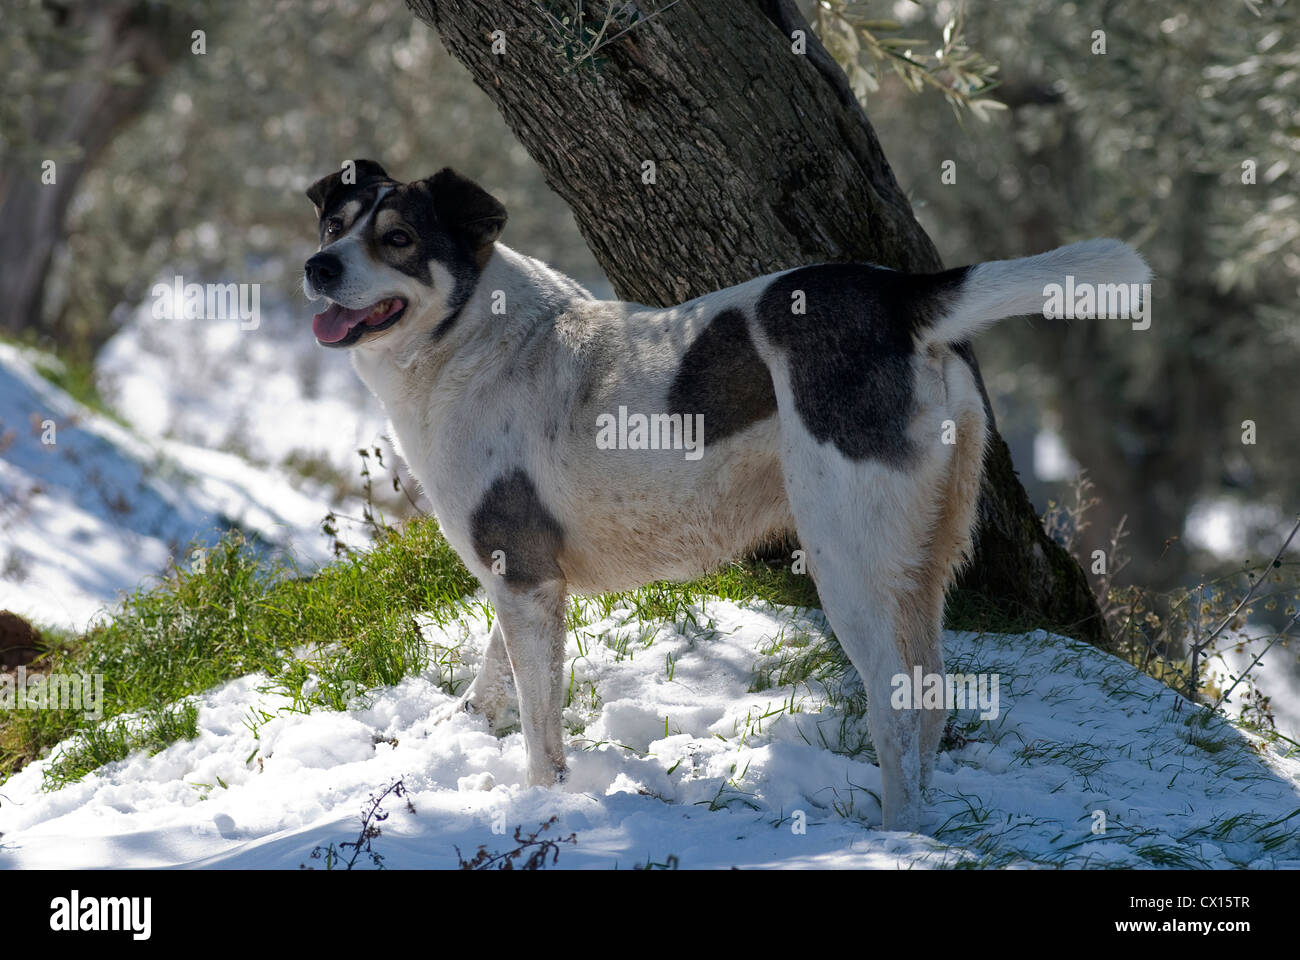 Mongrel dog standing in snowy olive grove (Pelion, Greece) - Stock Image